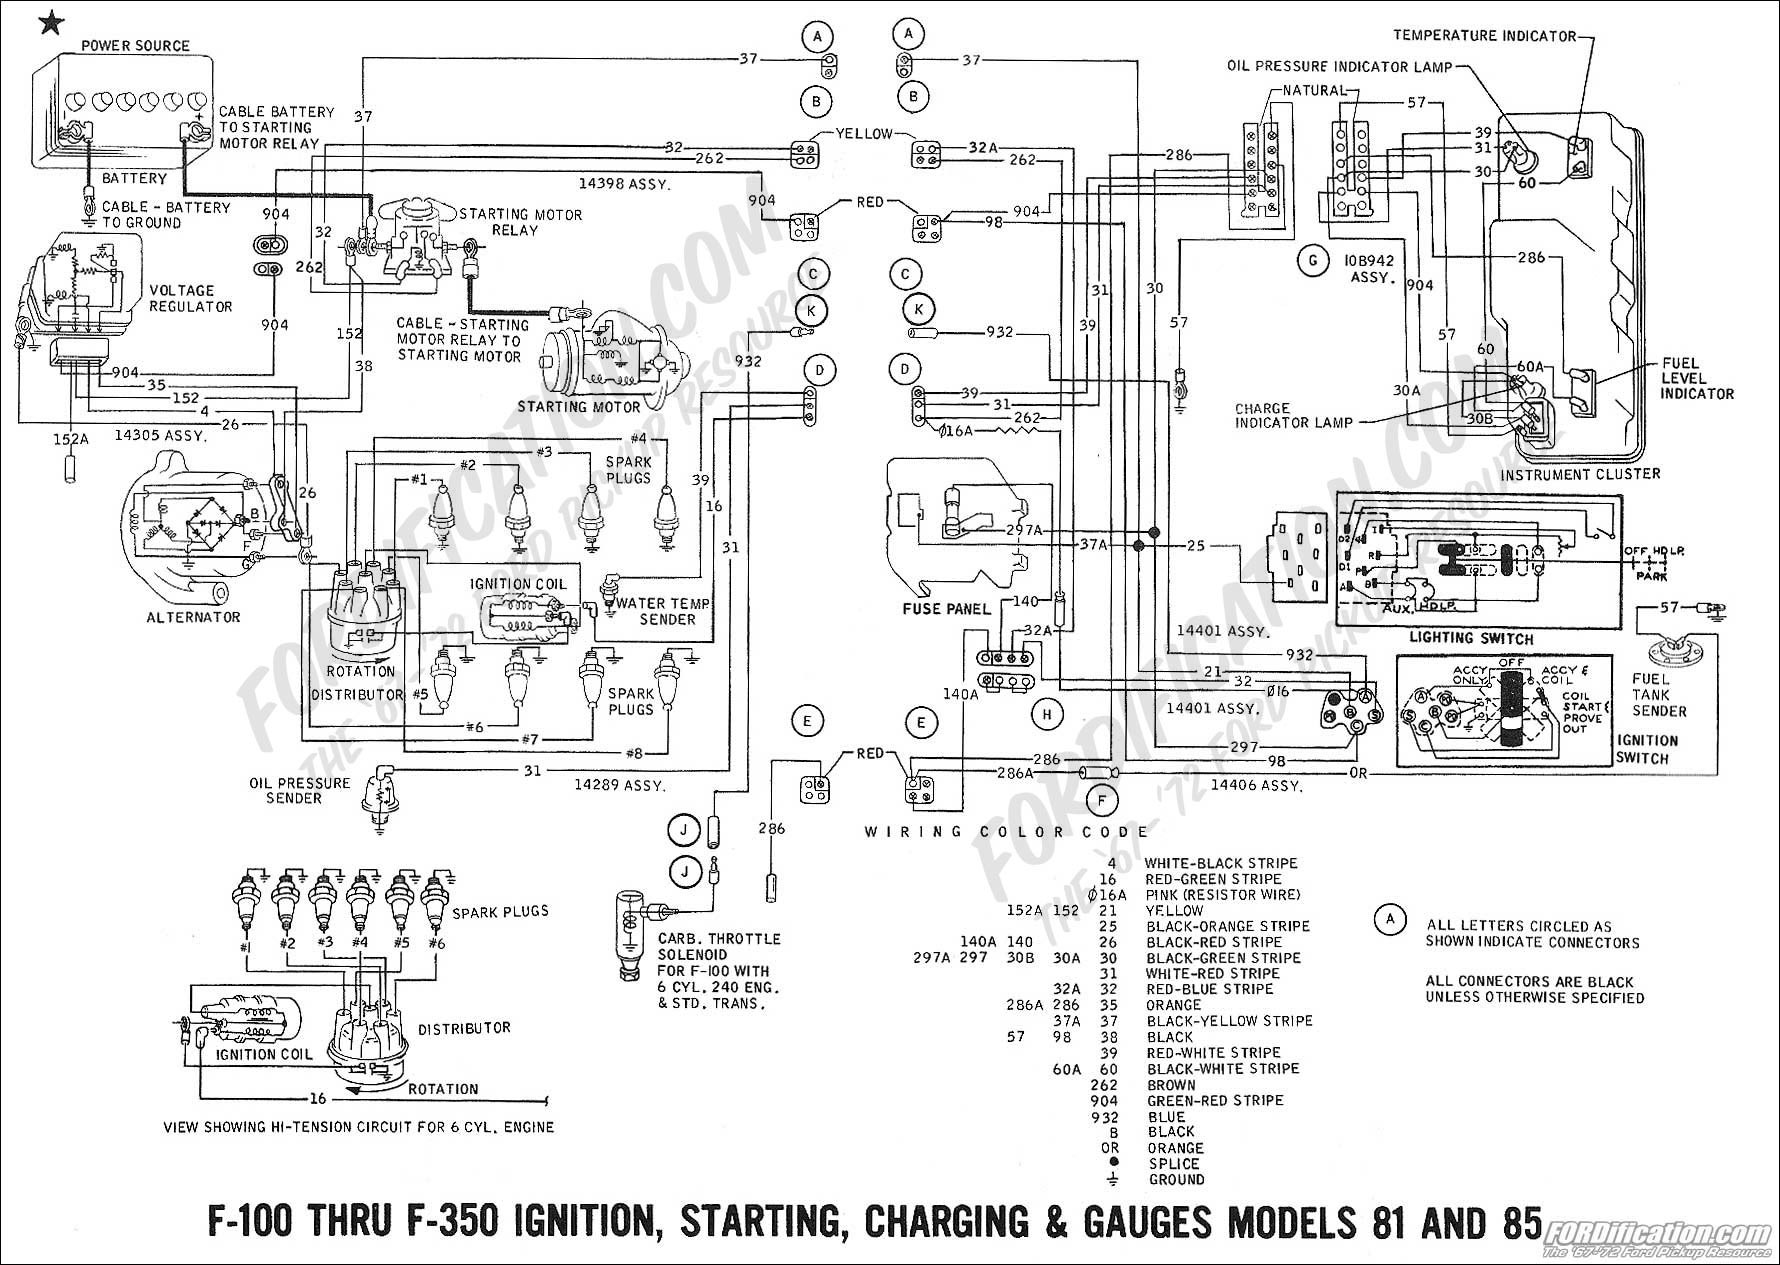 2006 Saturn Vue Parts Diagram Iwak Kutok Saturn Sl1 Engine Diagram Wiring Info • Of 2006 Saturn Vue Parts Diagram